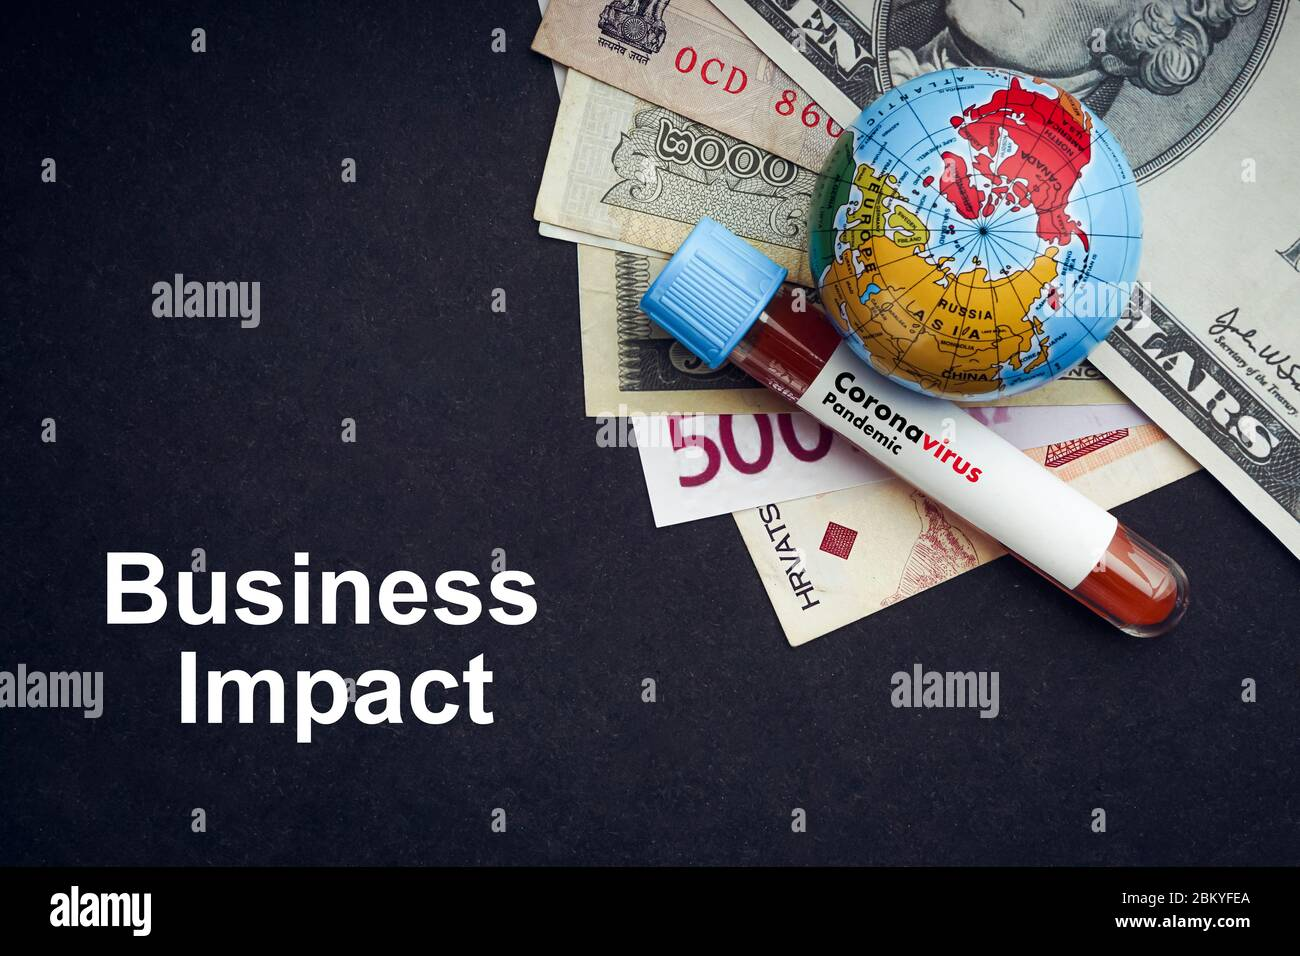 CORONAVIRUS BUSINESS IMPACT text with currency banknotes, world globe and blood test vacuum tube on black background. Covid-19 or Coronavirus Concept Stock Photo